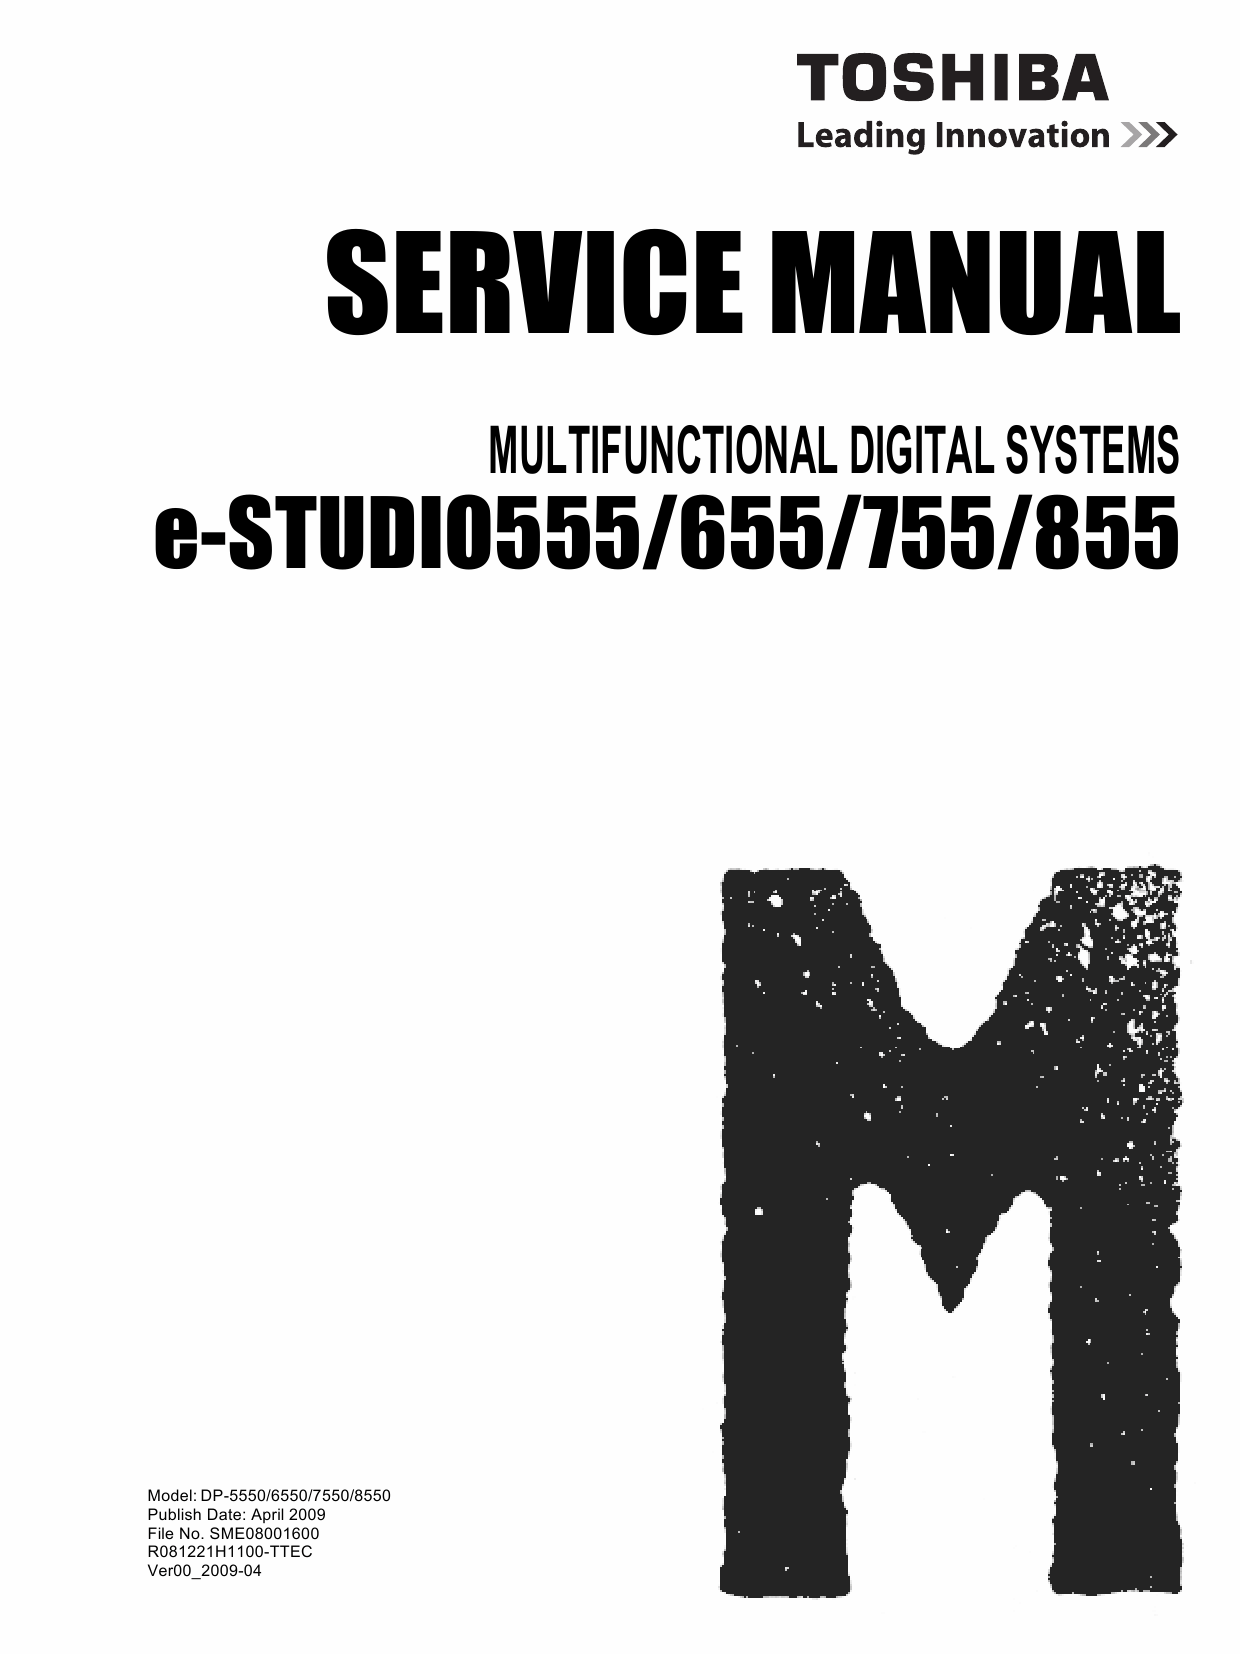 TOSHIBA e-STUDIO 555 655 755 855 Service Manual-1